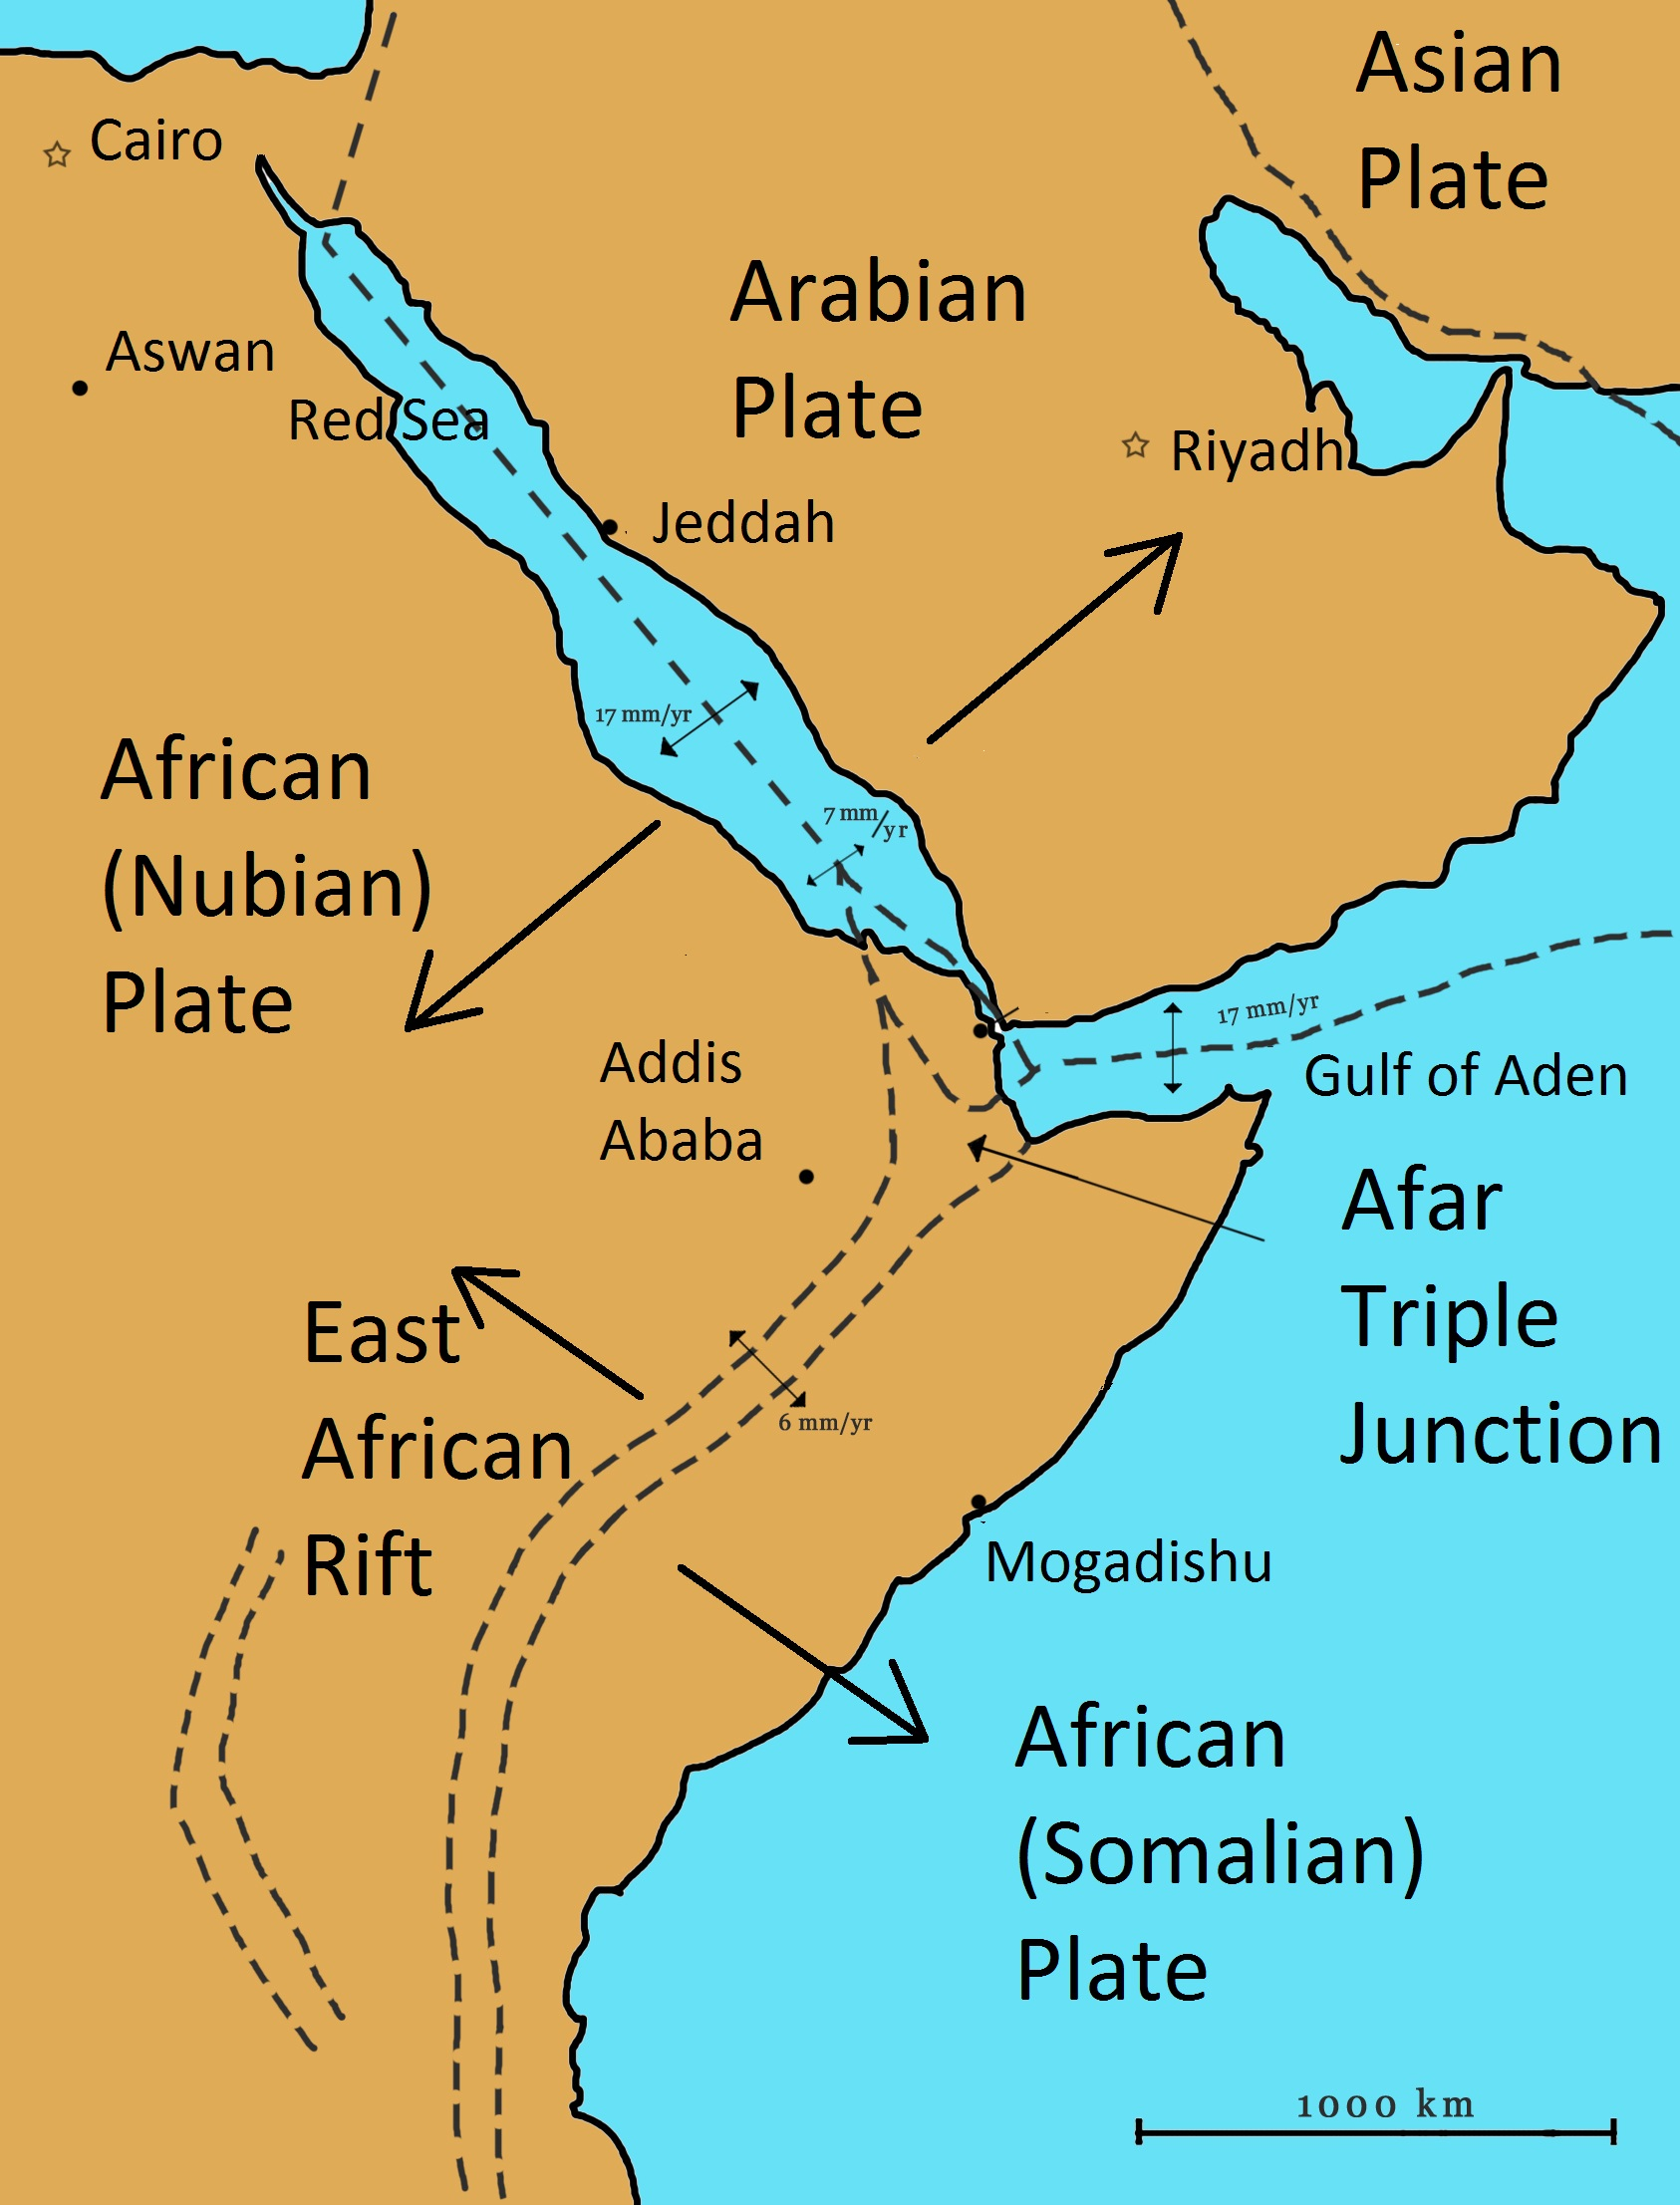 Afar Triple Junction